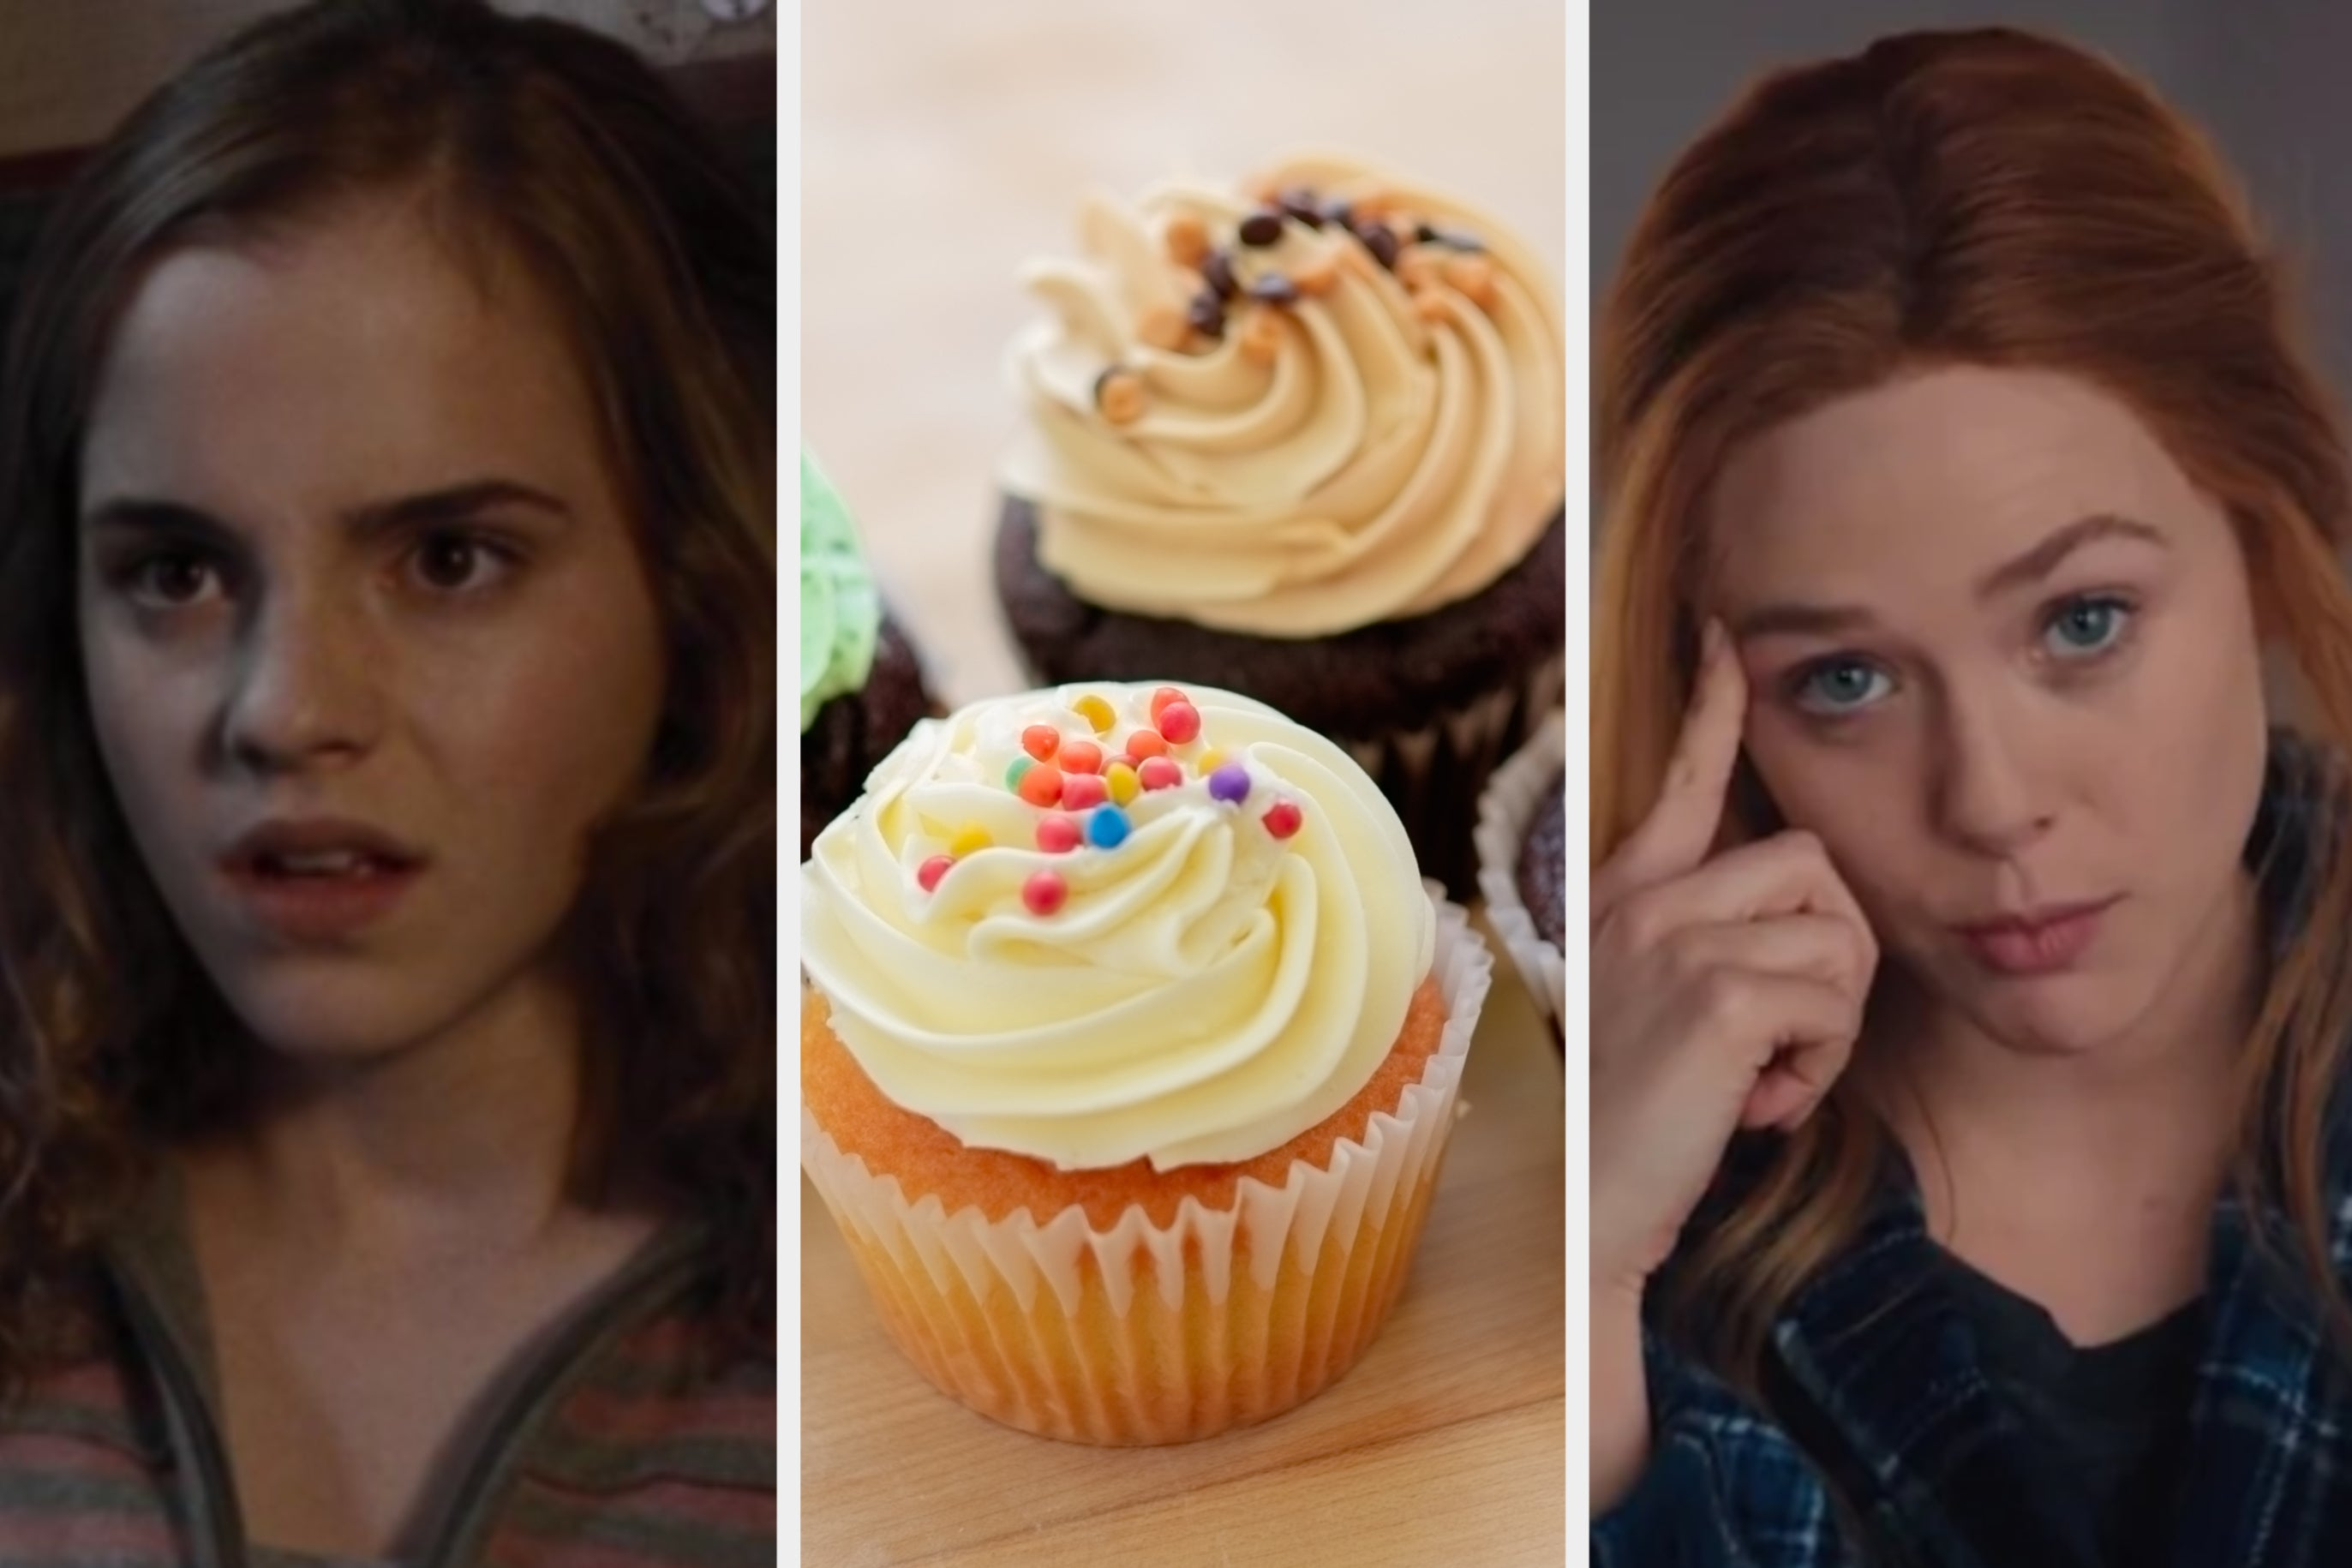 Make Your Way Through These 7 Dessert Courses To Reveal If You're More Wanda Maximoff Or Hermione Granger